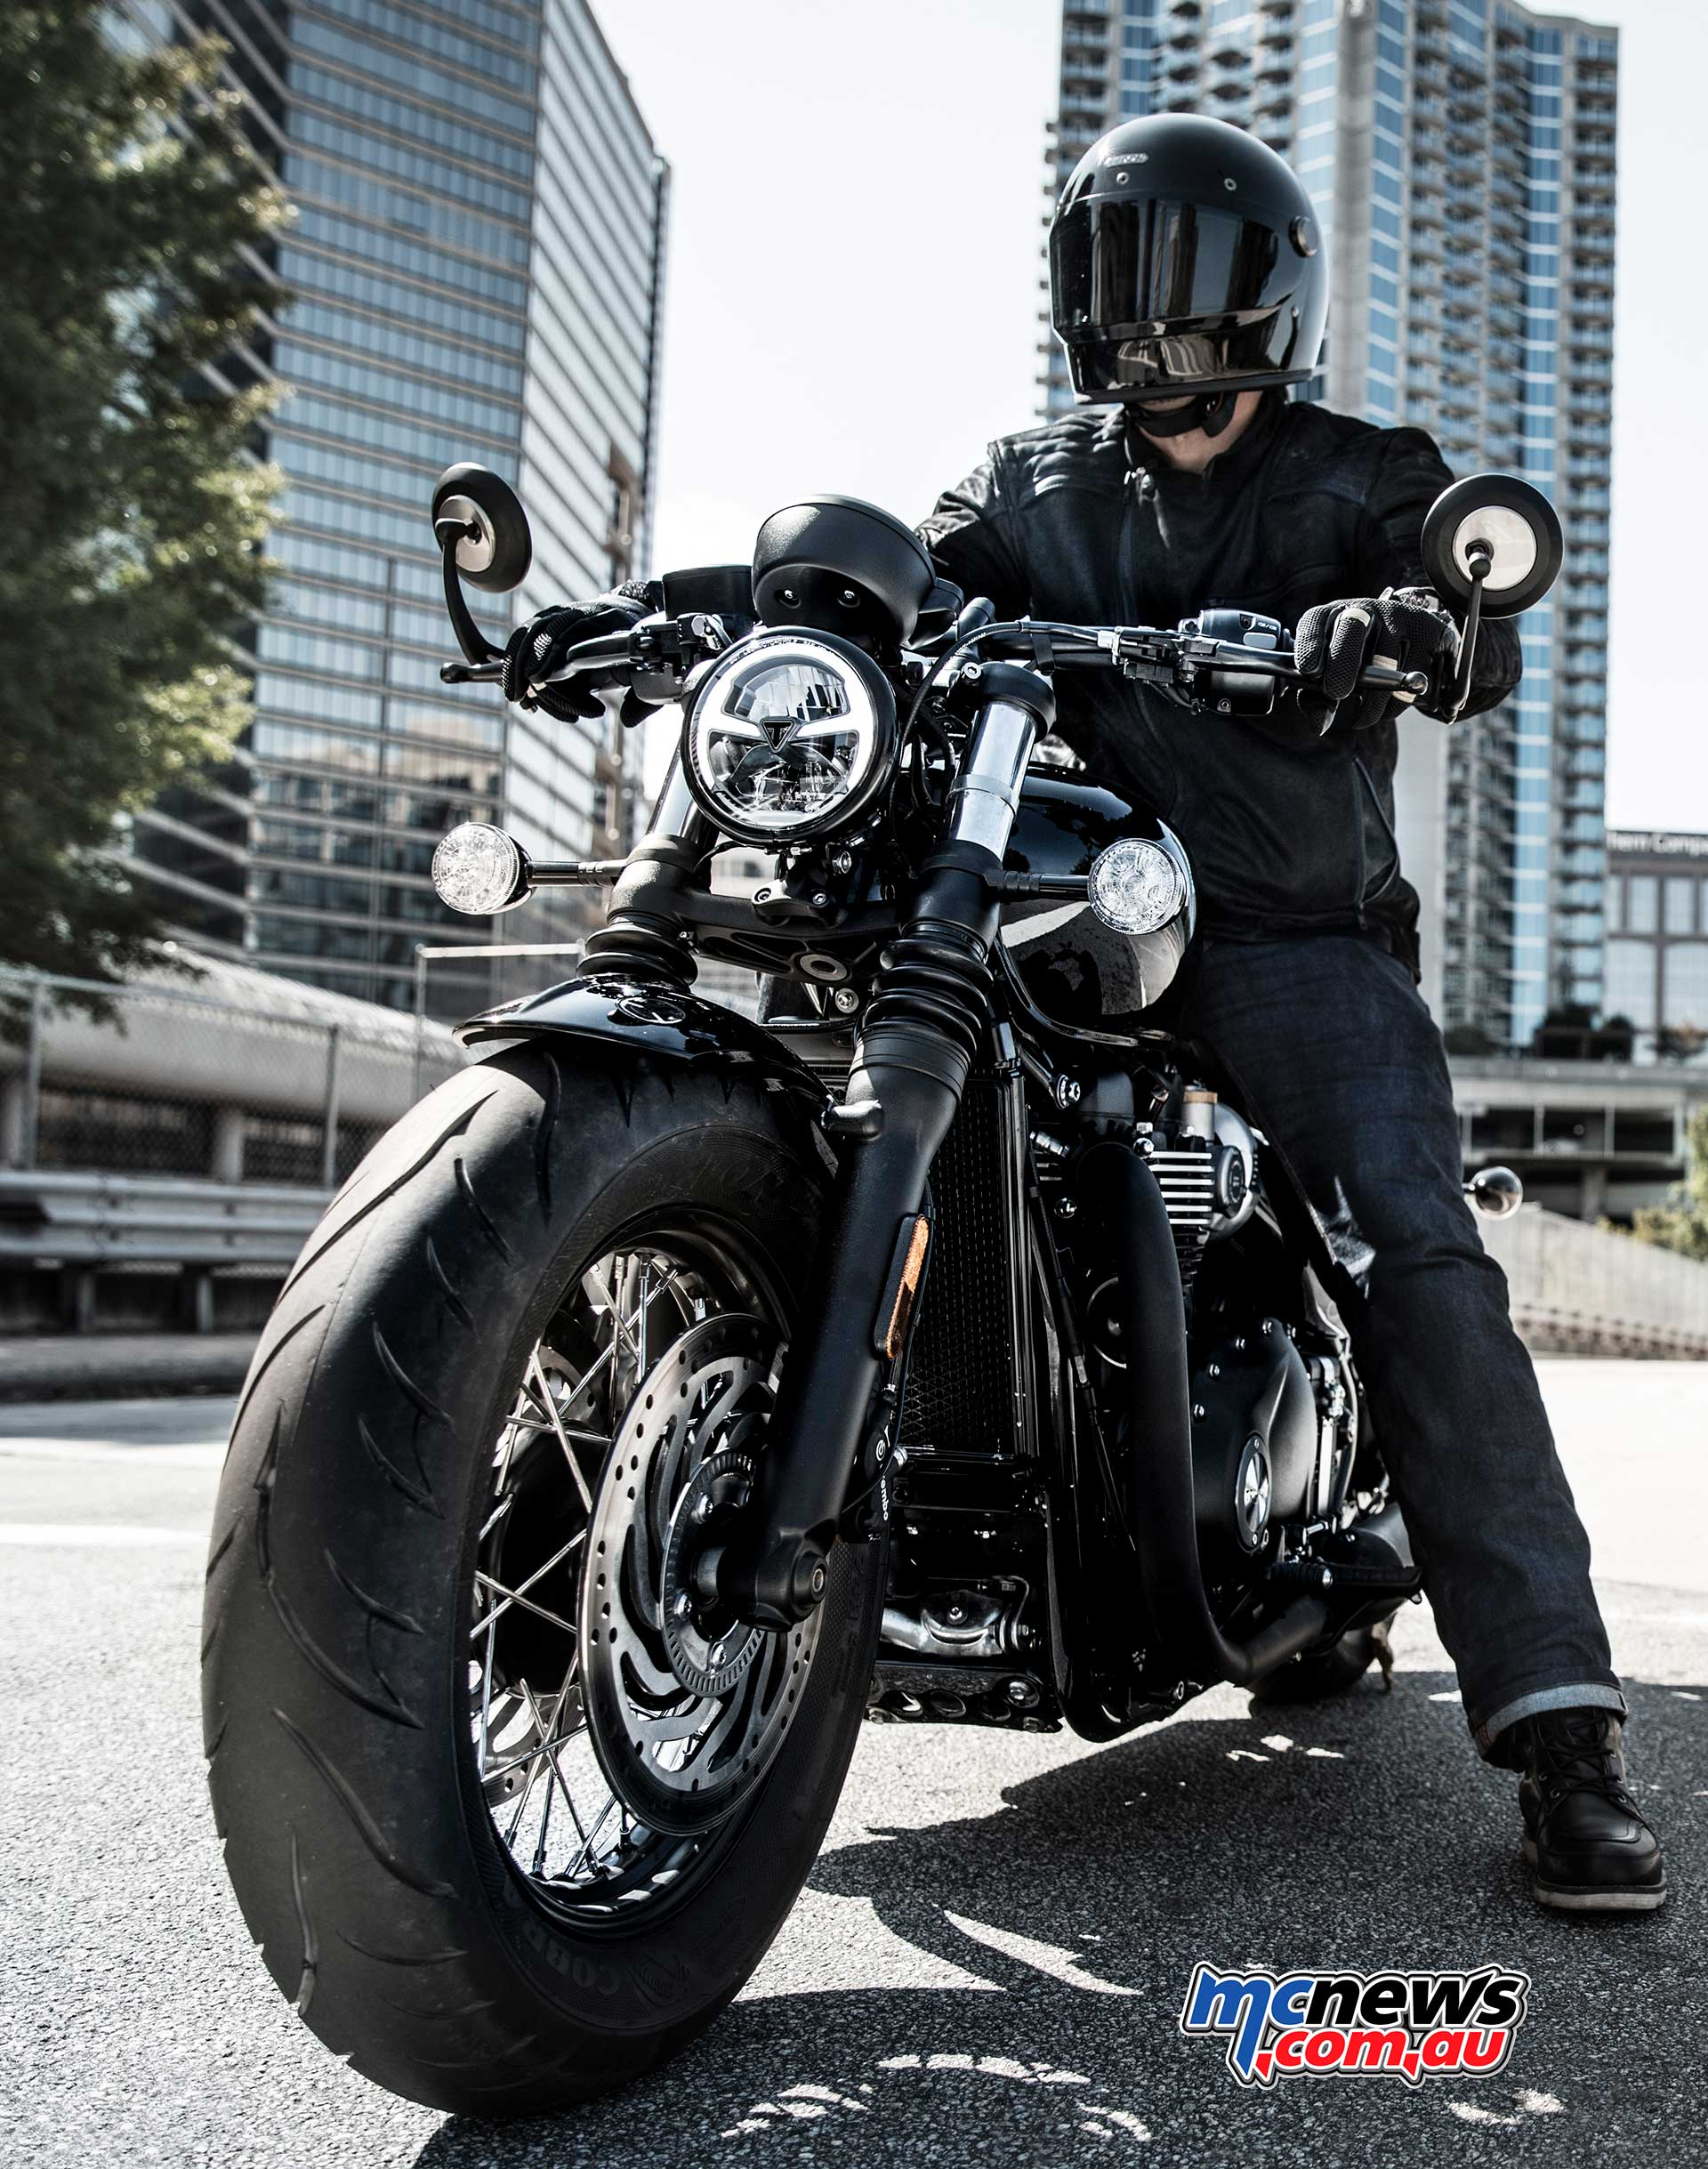 Triumph Bobber Black Fatter And Blacker For 2018 Motorcycle News Sport And Reviews